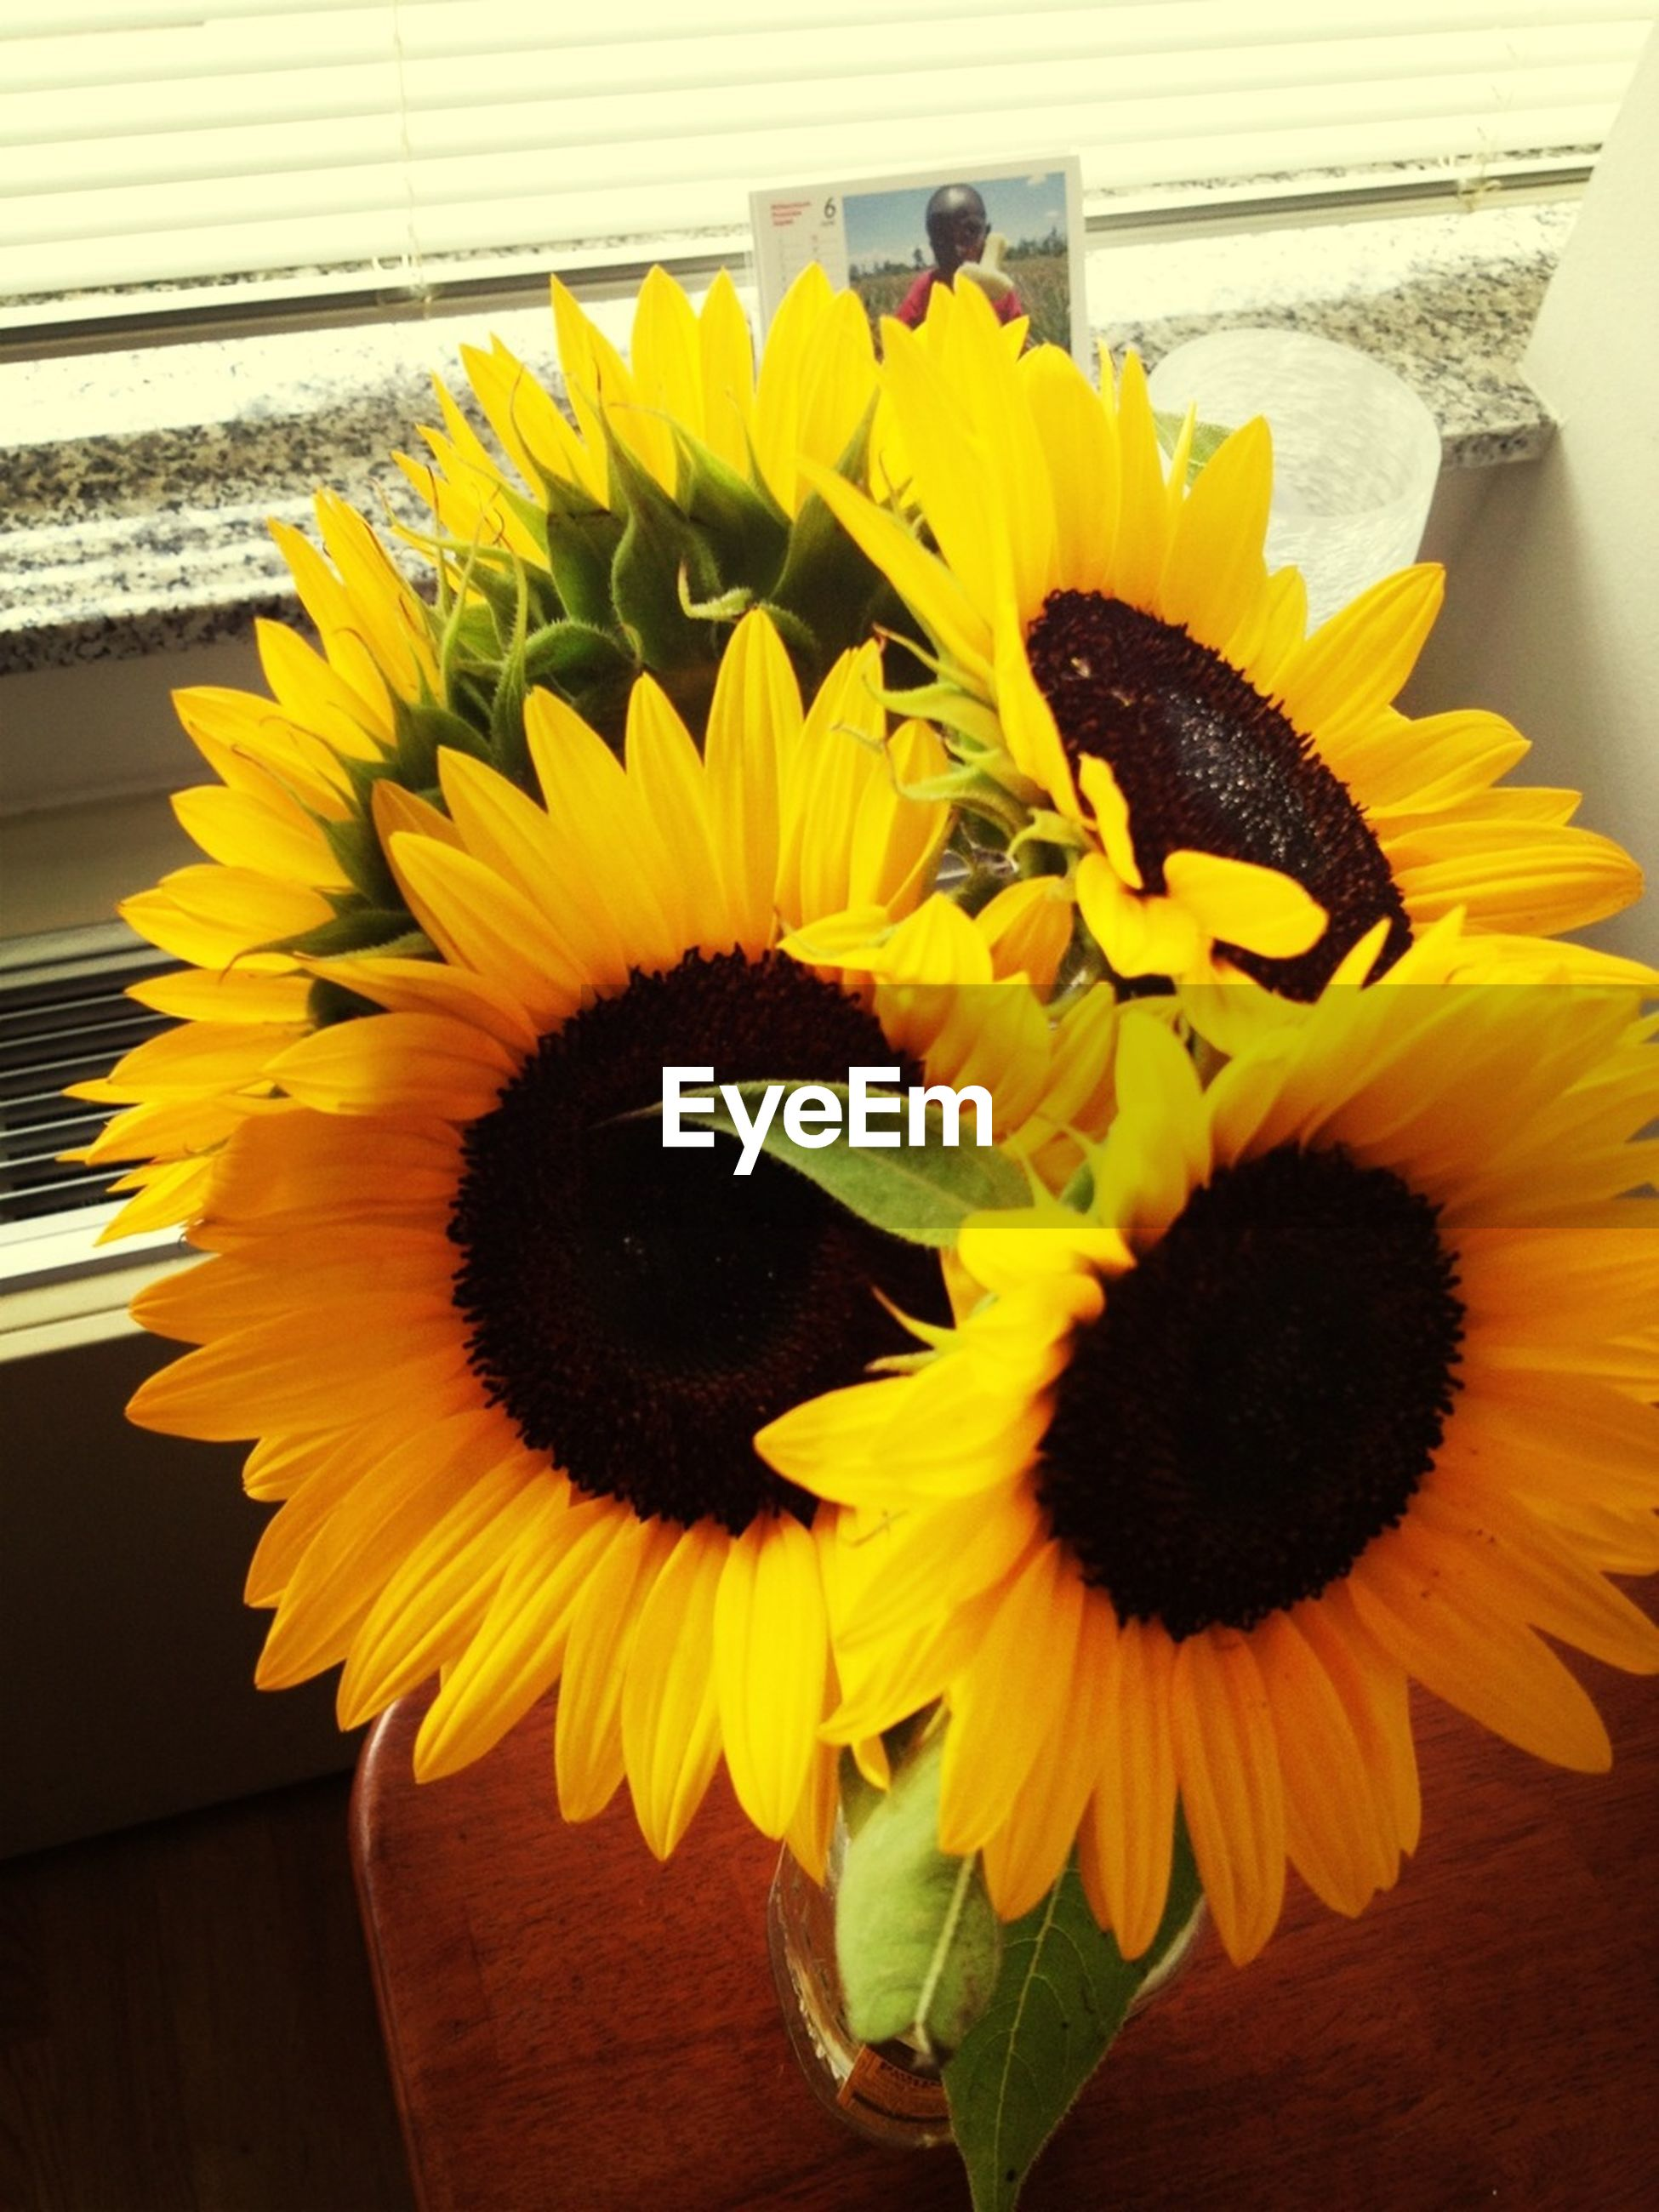 flower, yellow, petal, freshness, flower head, fragility, sunflower, pollen, beauty in nature, indoors, close-up, growth, plant, nature, potted plant, blooming, high angle view, leaf, in bloom, no people